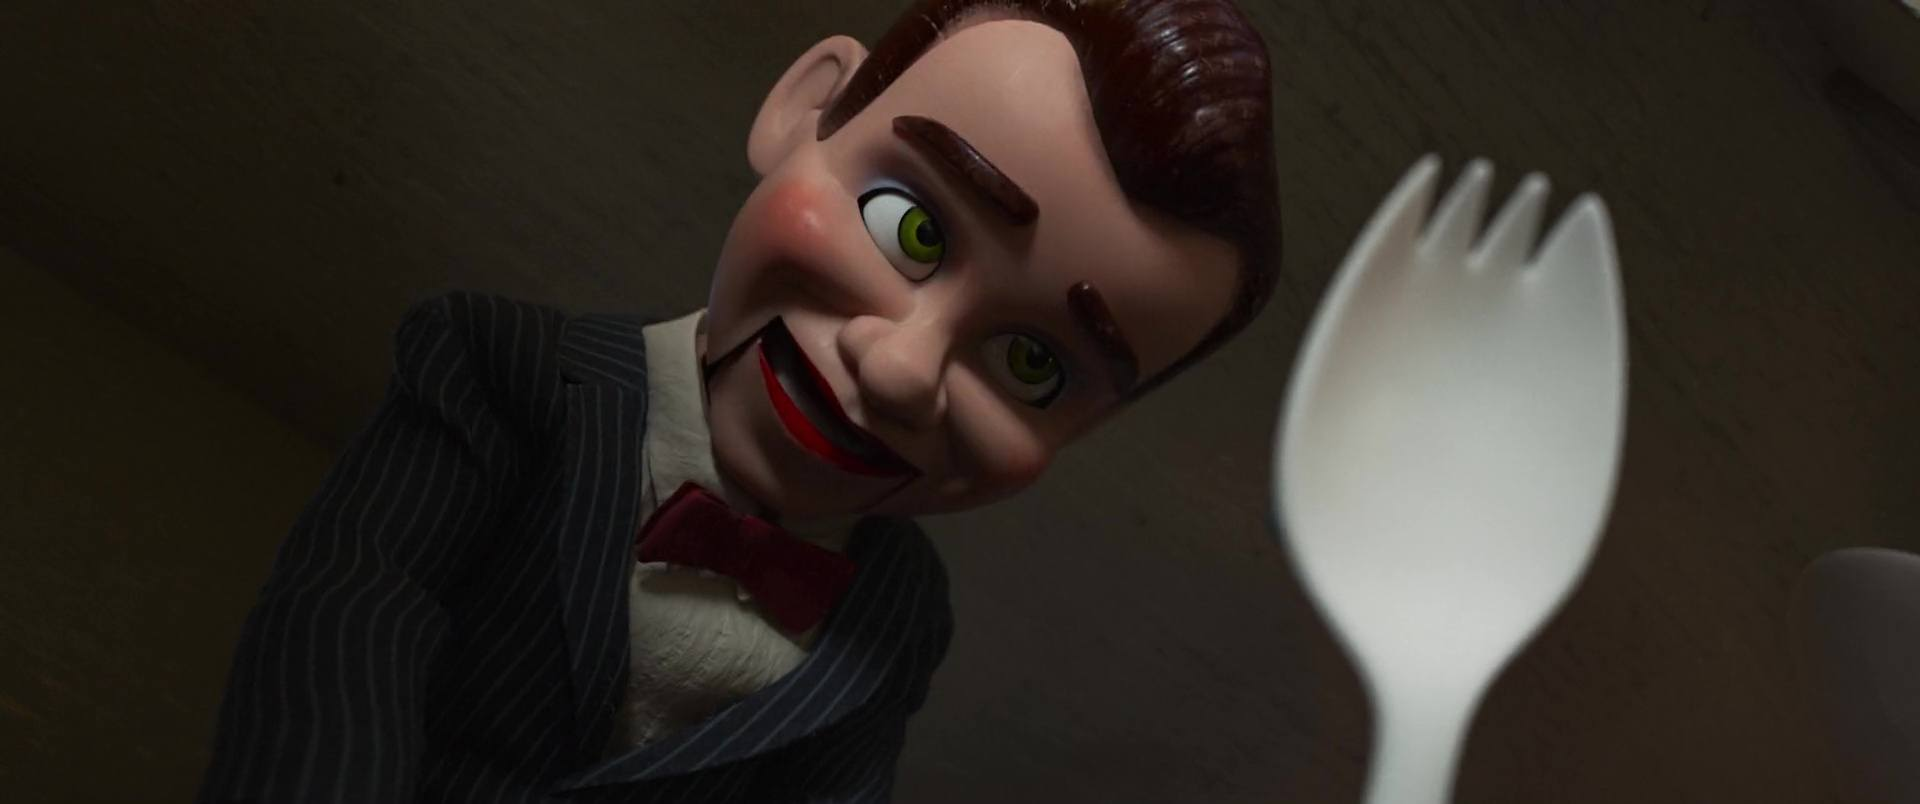 benson-personnage-toy-story-4-04